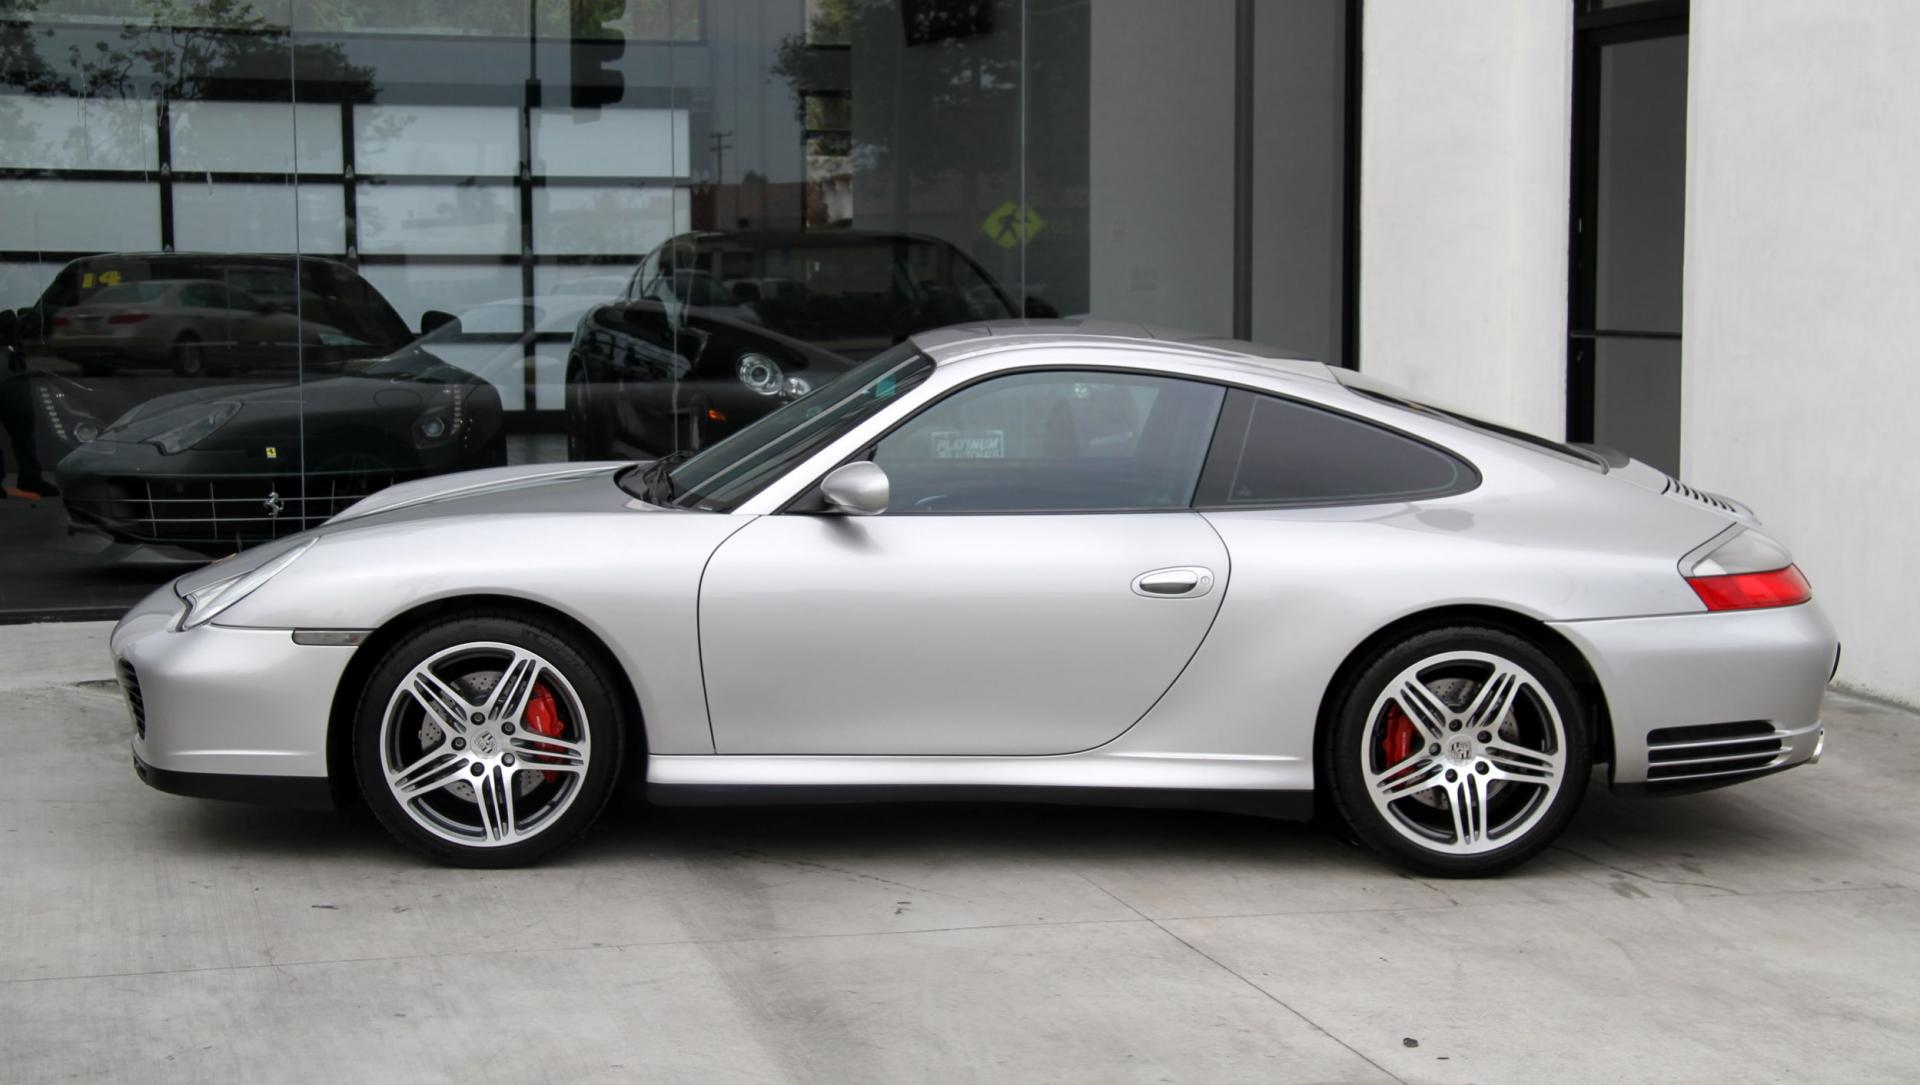 2002 porsche 911 carrera 4s stock 5955 for sale near redondo beach ca ca porsche dealer. Black Bedroom Furniture Sets. Home Design Ideas